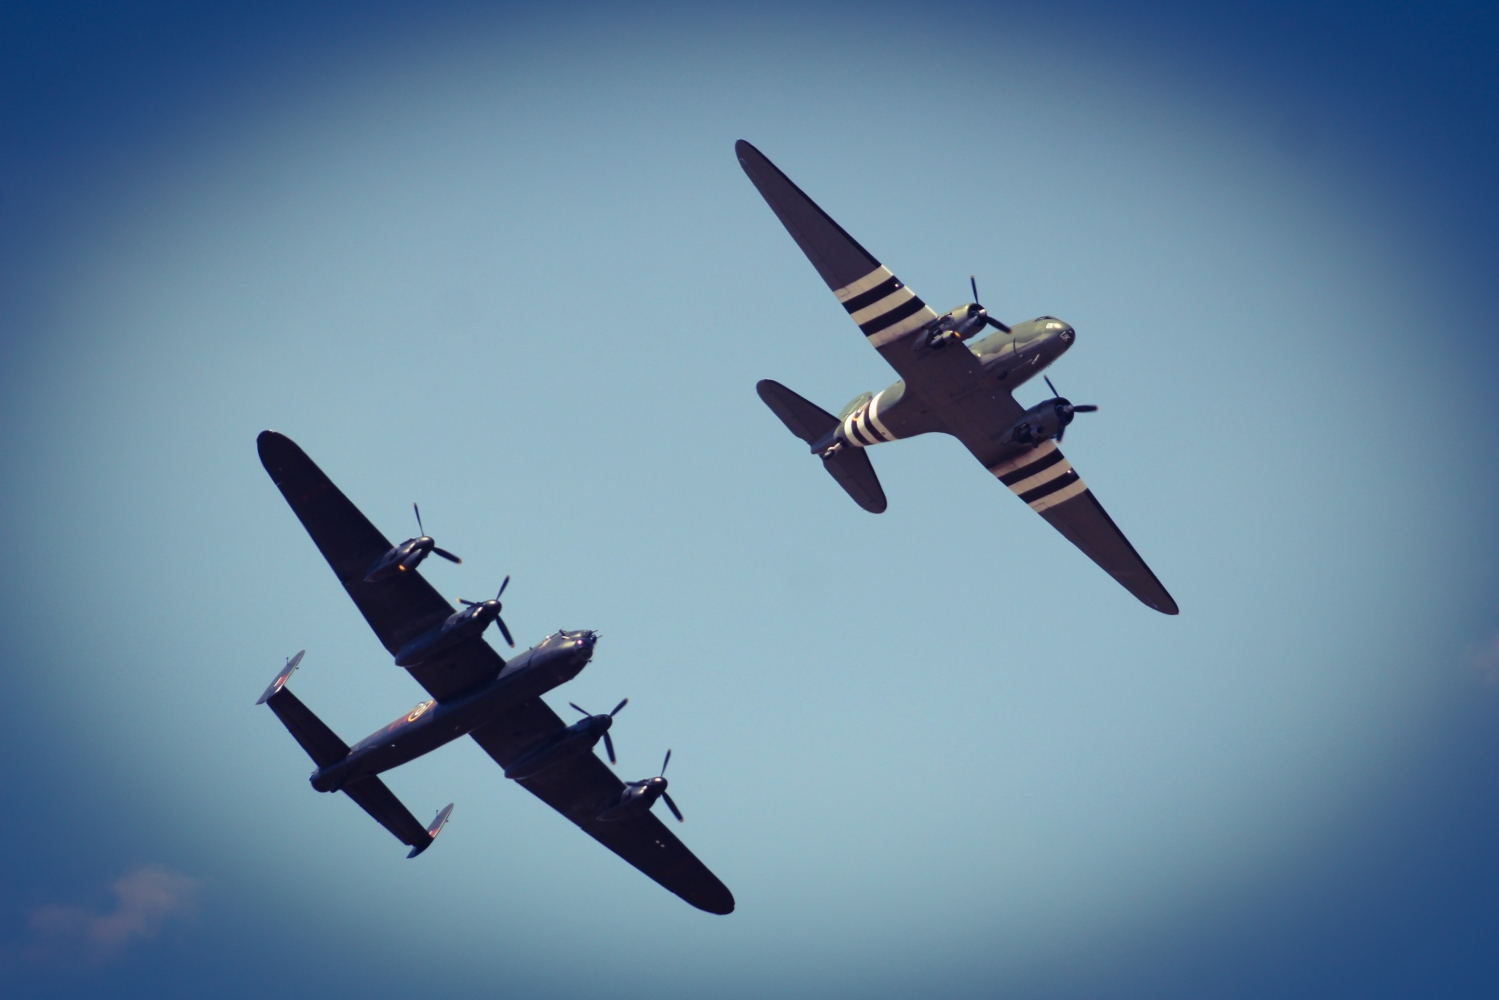 My two favourite aircraft - Lanc & Dak together